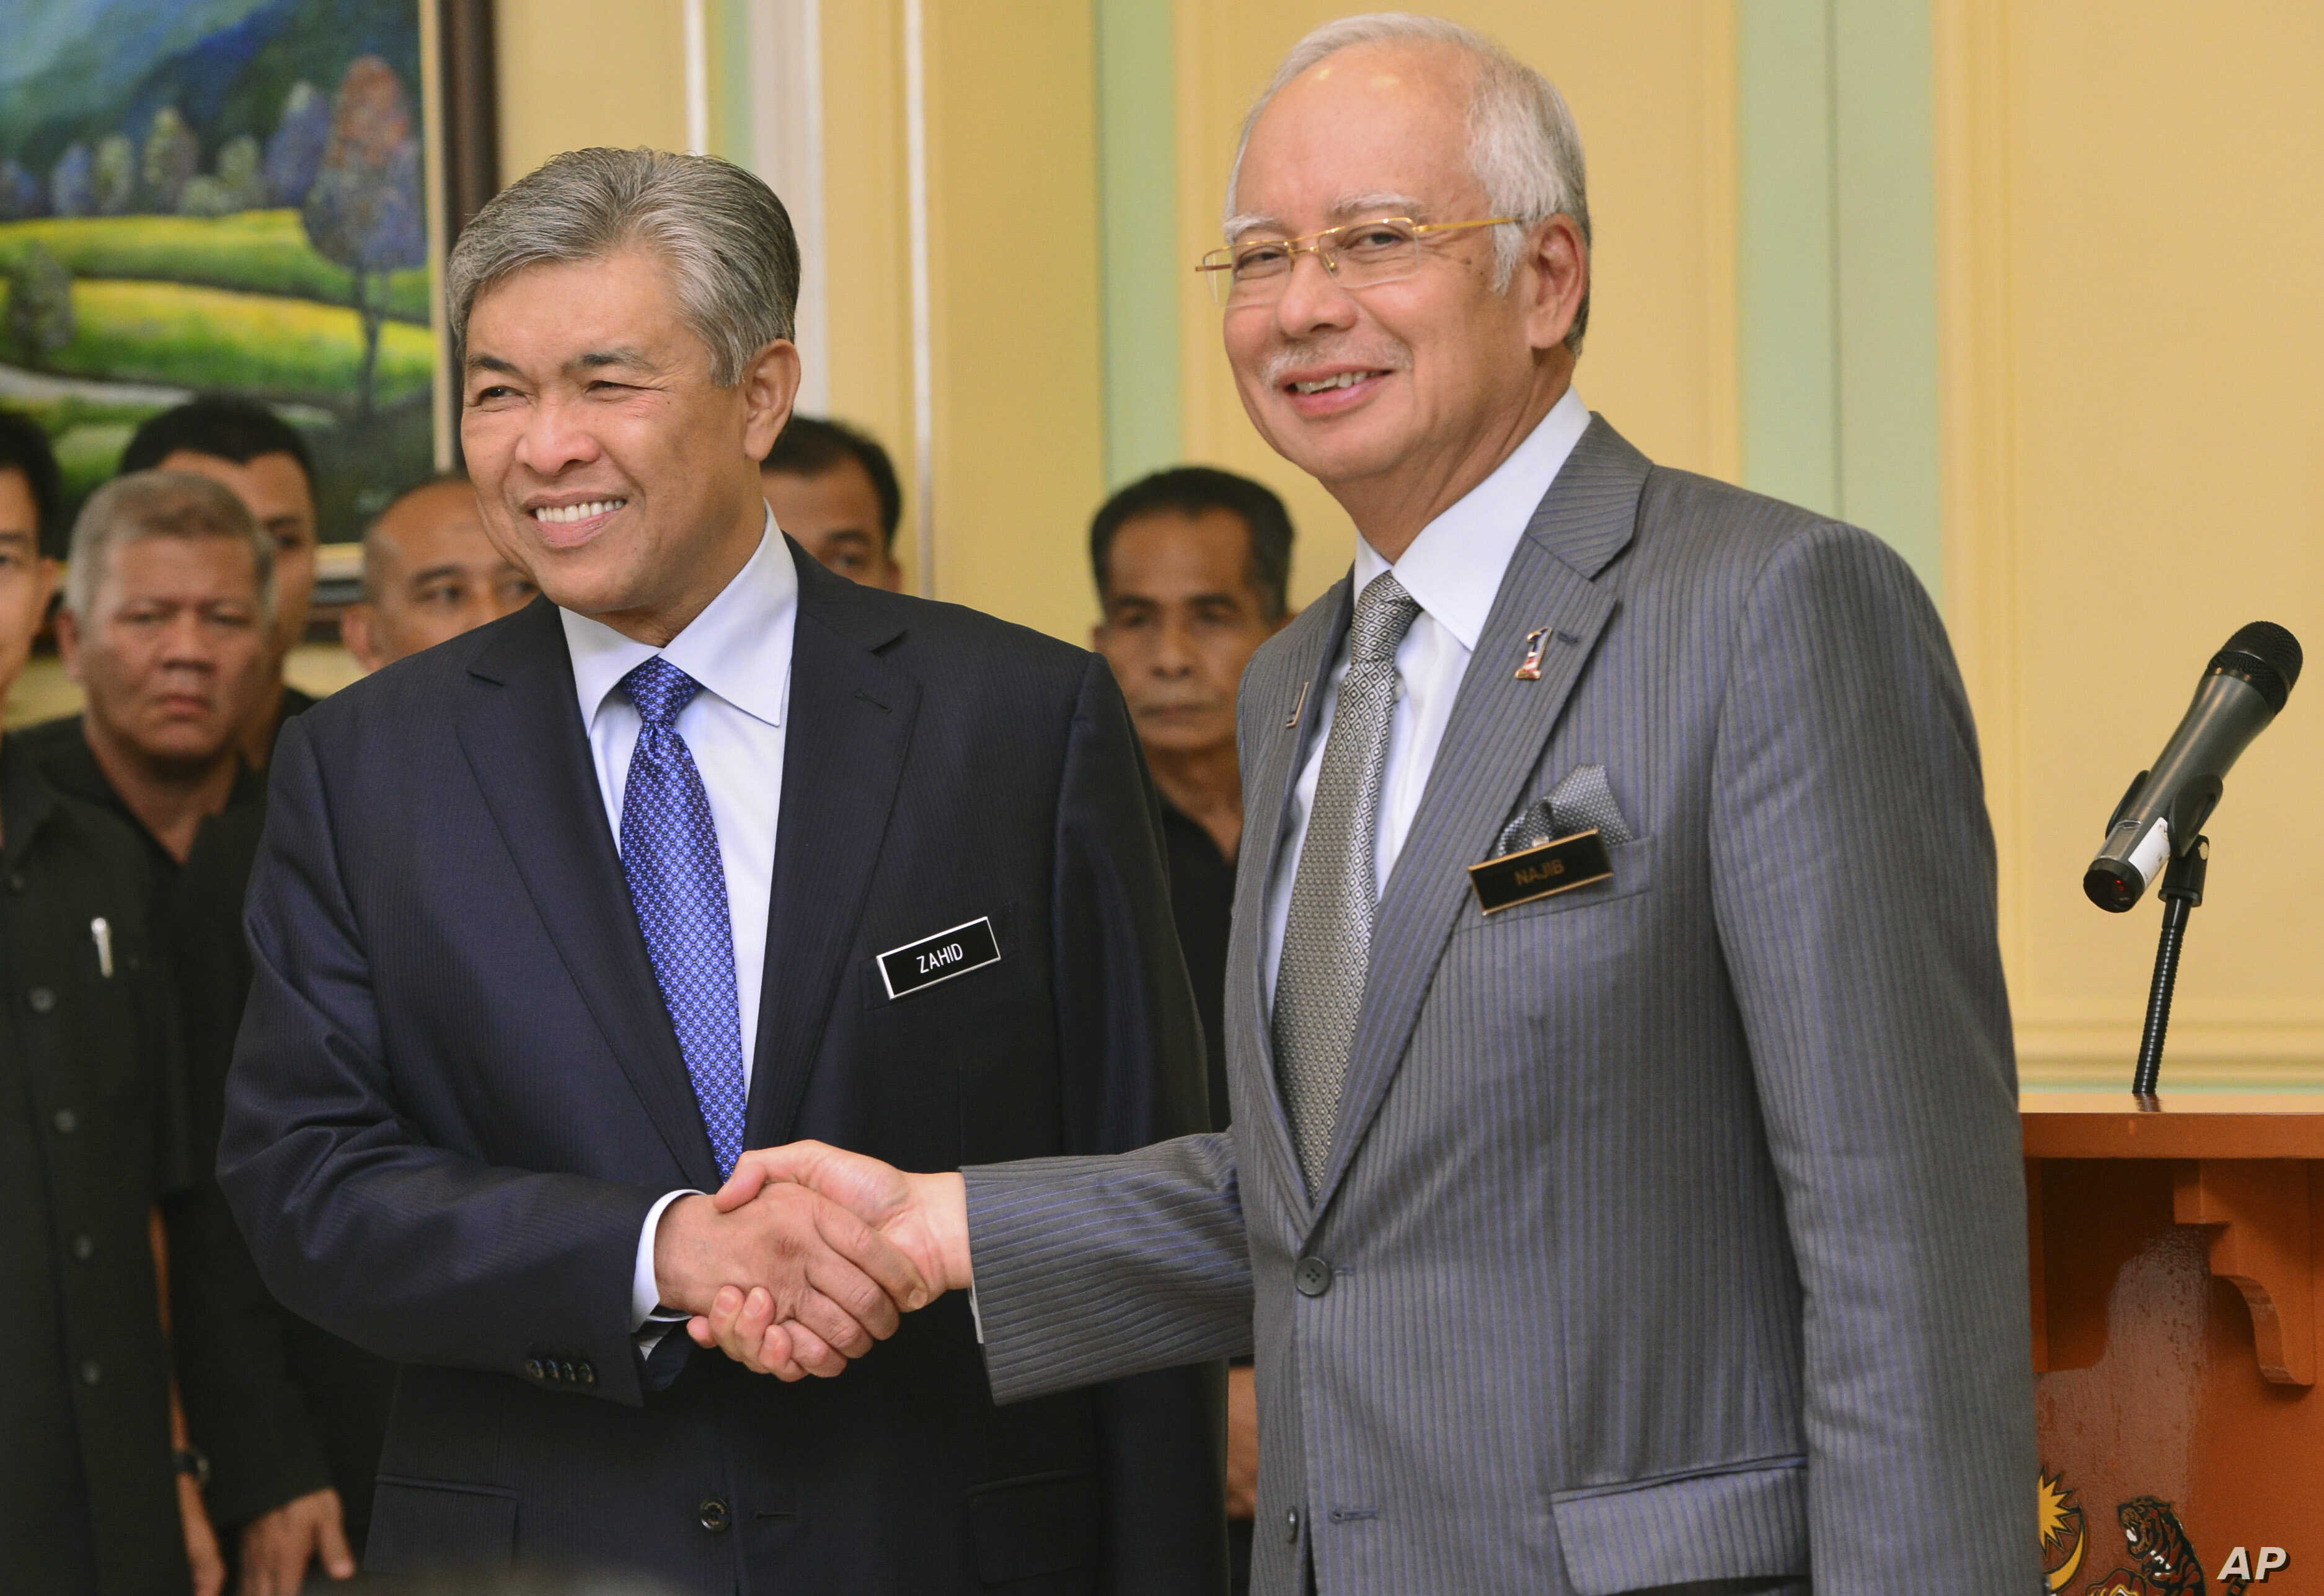 Malaysia's Prime Minister Najib Razak, right, shakes hands with his newly-appointed Deputy Prime Minister Ahmad Zahid Hamidi after addressing a press conference at the prime minister's office in Putrajaya, Malaysia, July, 28, 2015.